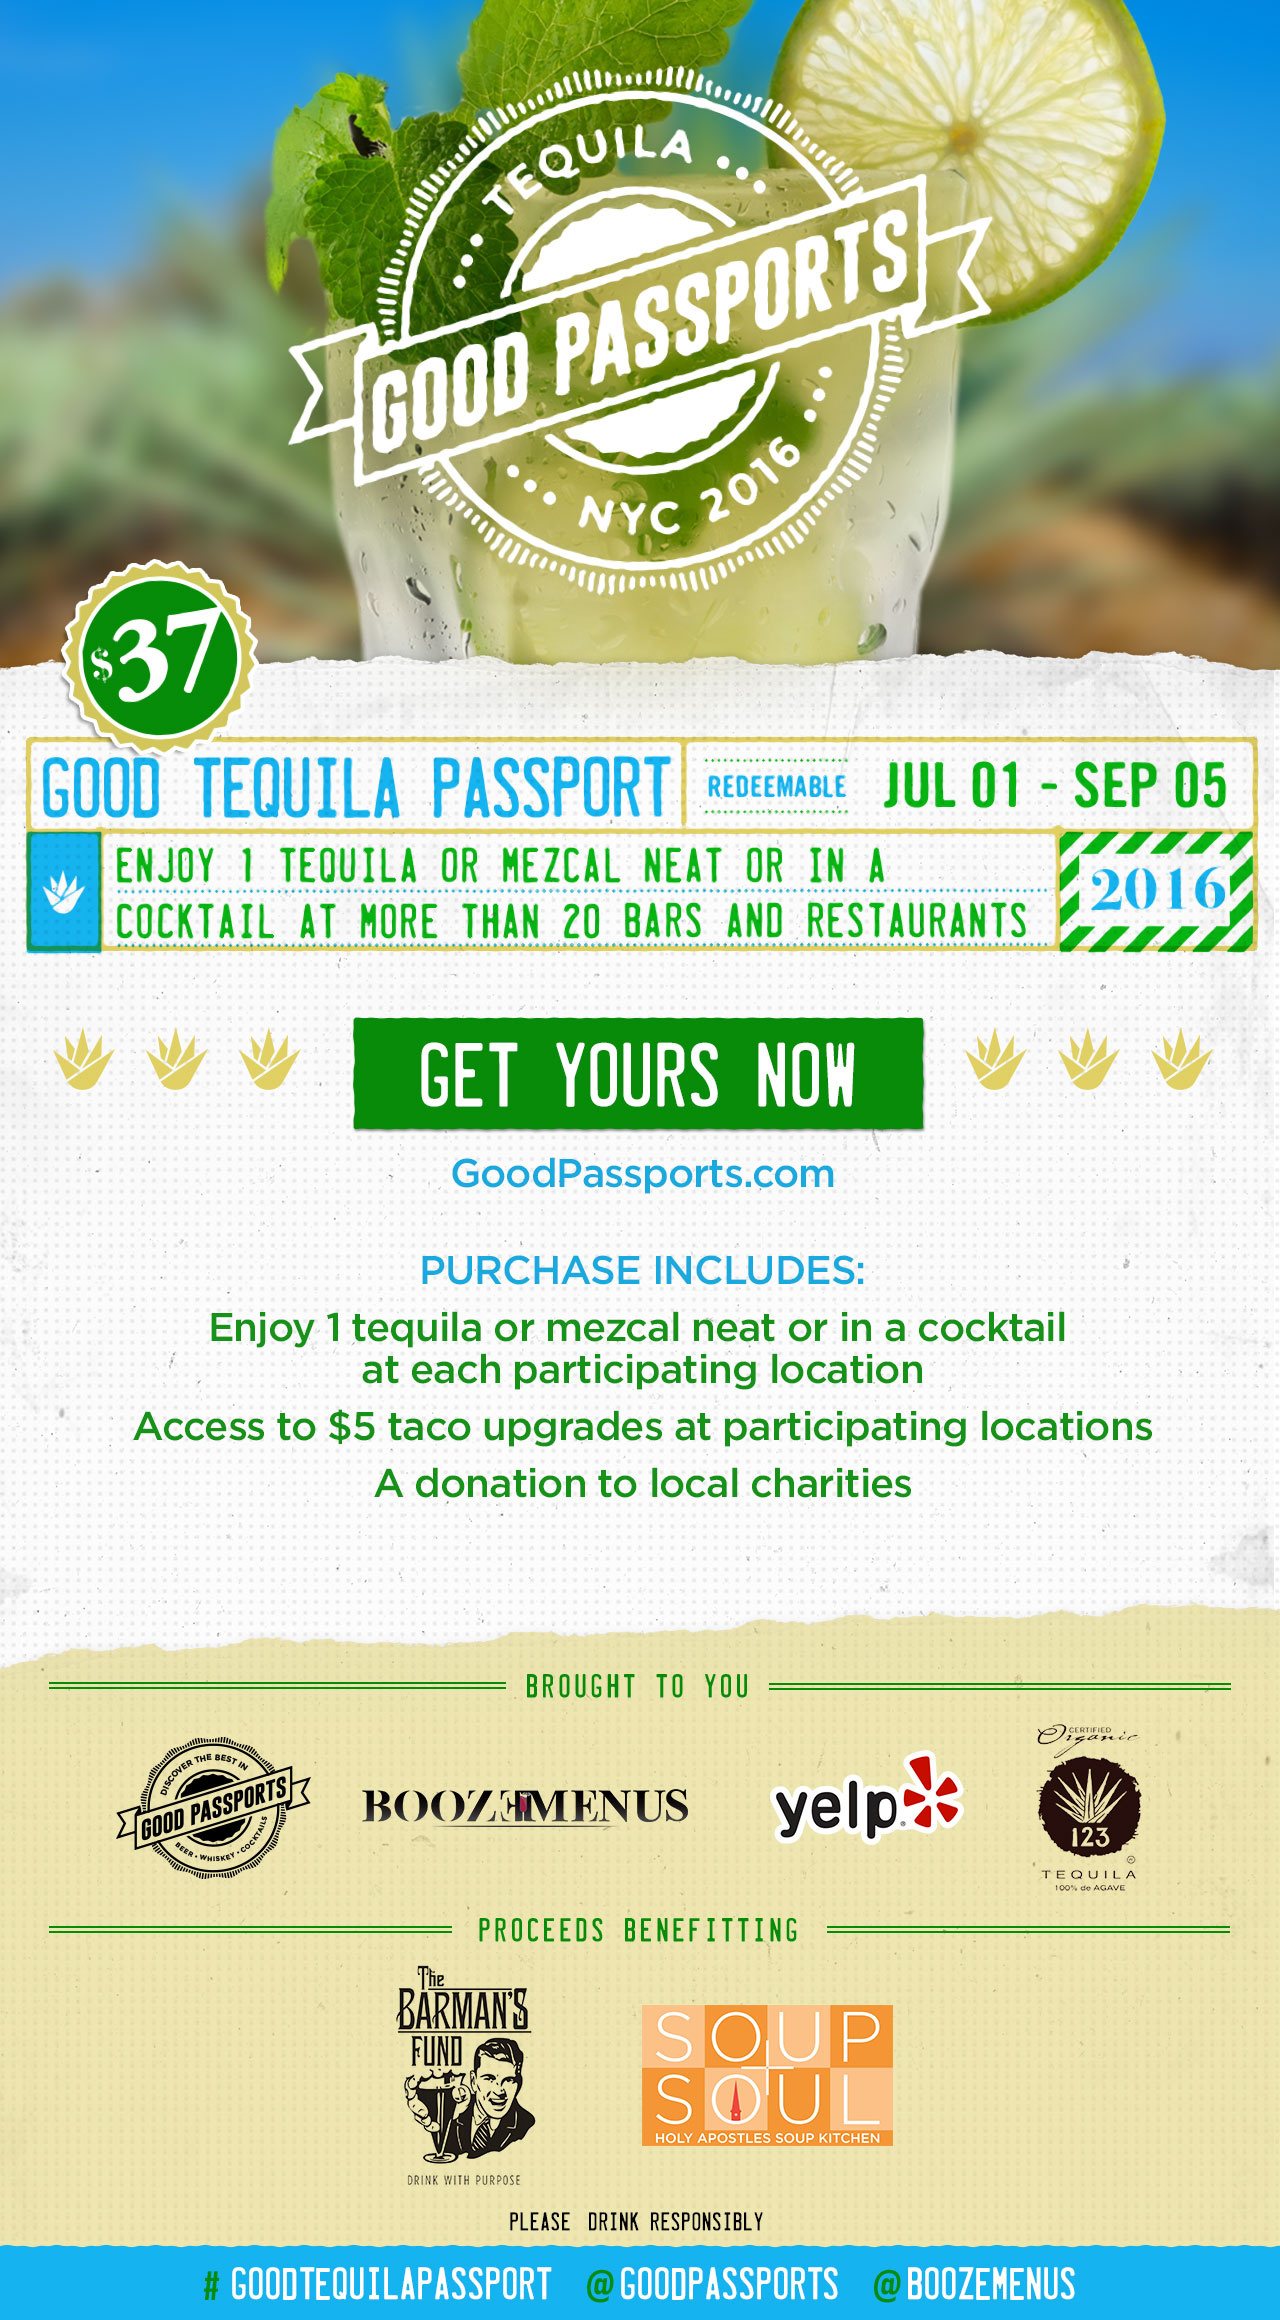 Good Tequila Passport - 20+ Tequila Drinks for only $37